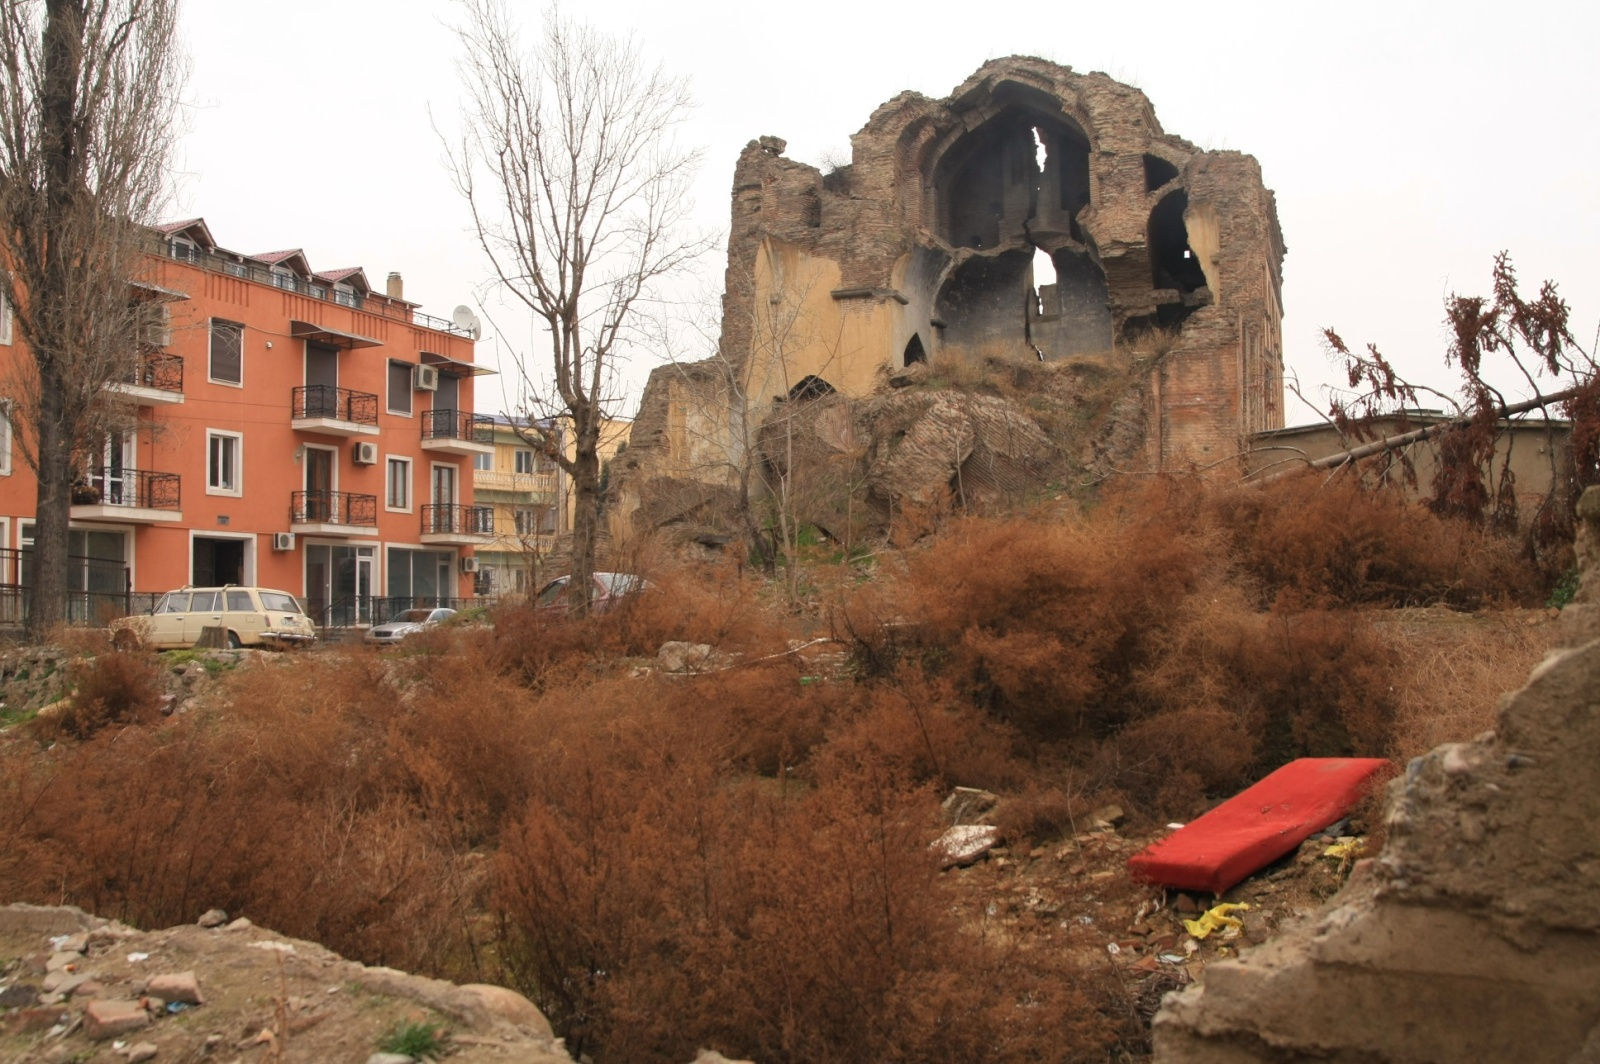 Remains of a collapsed church